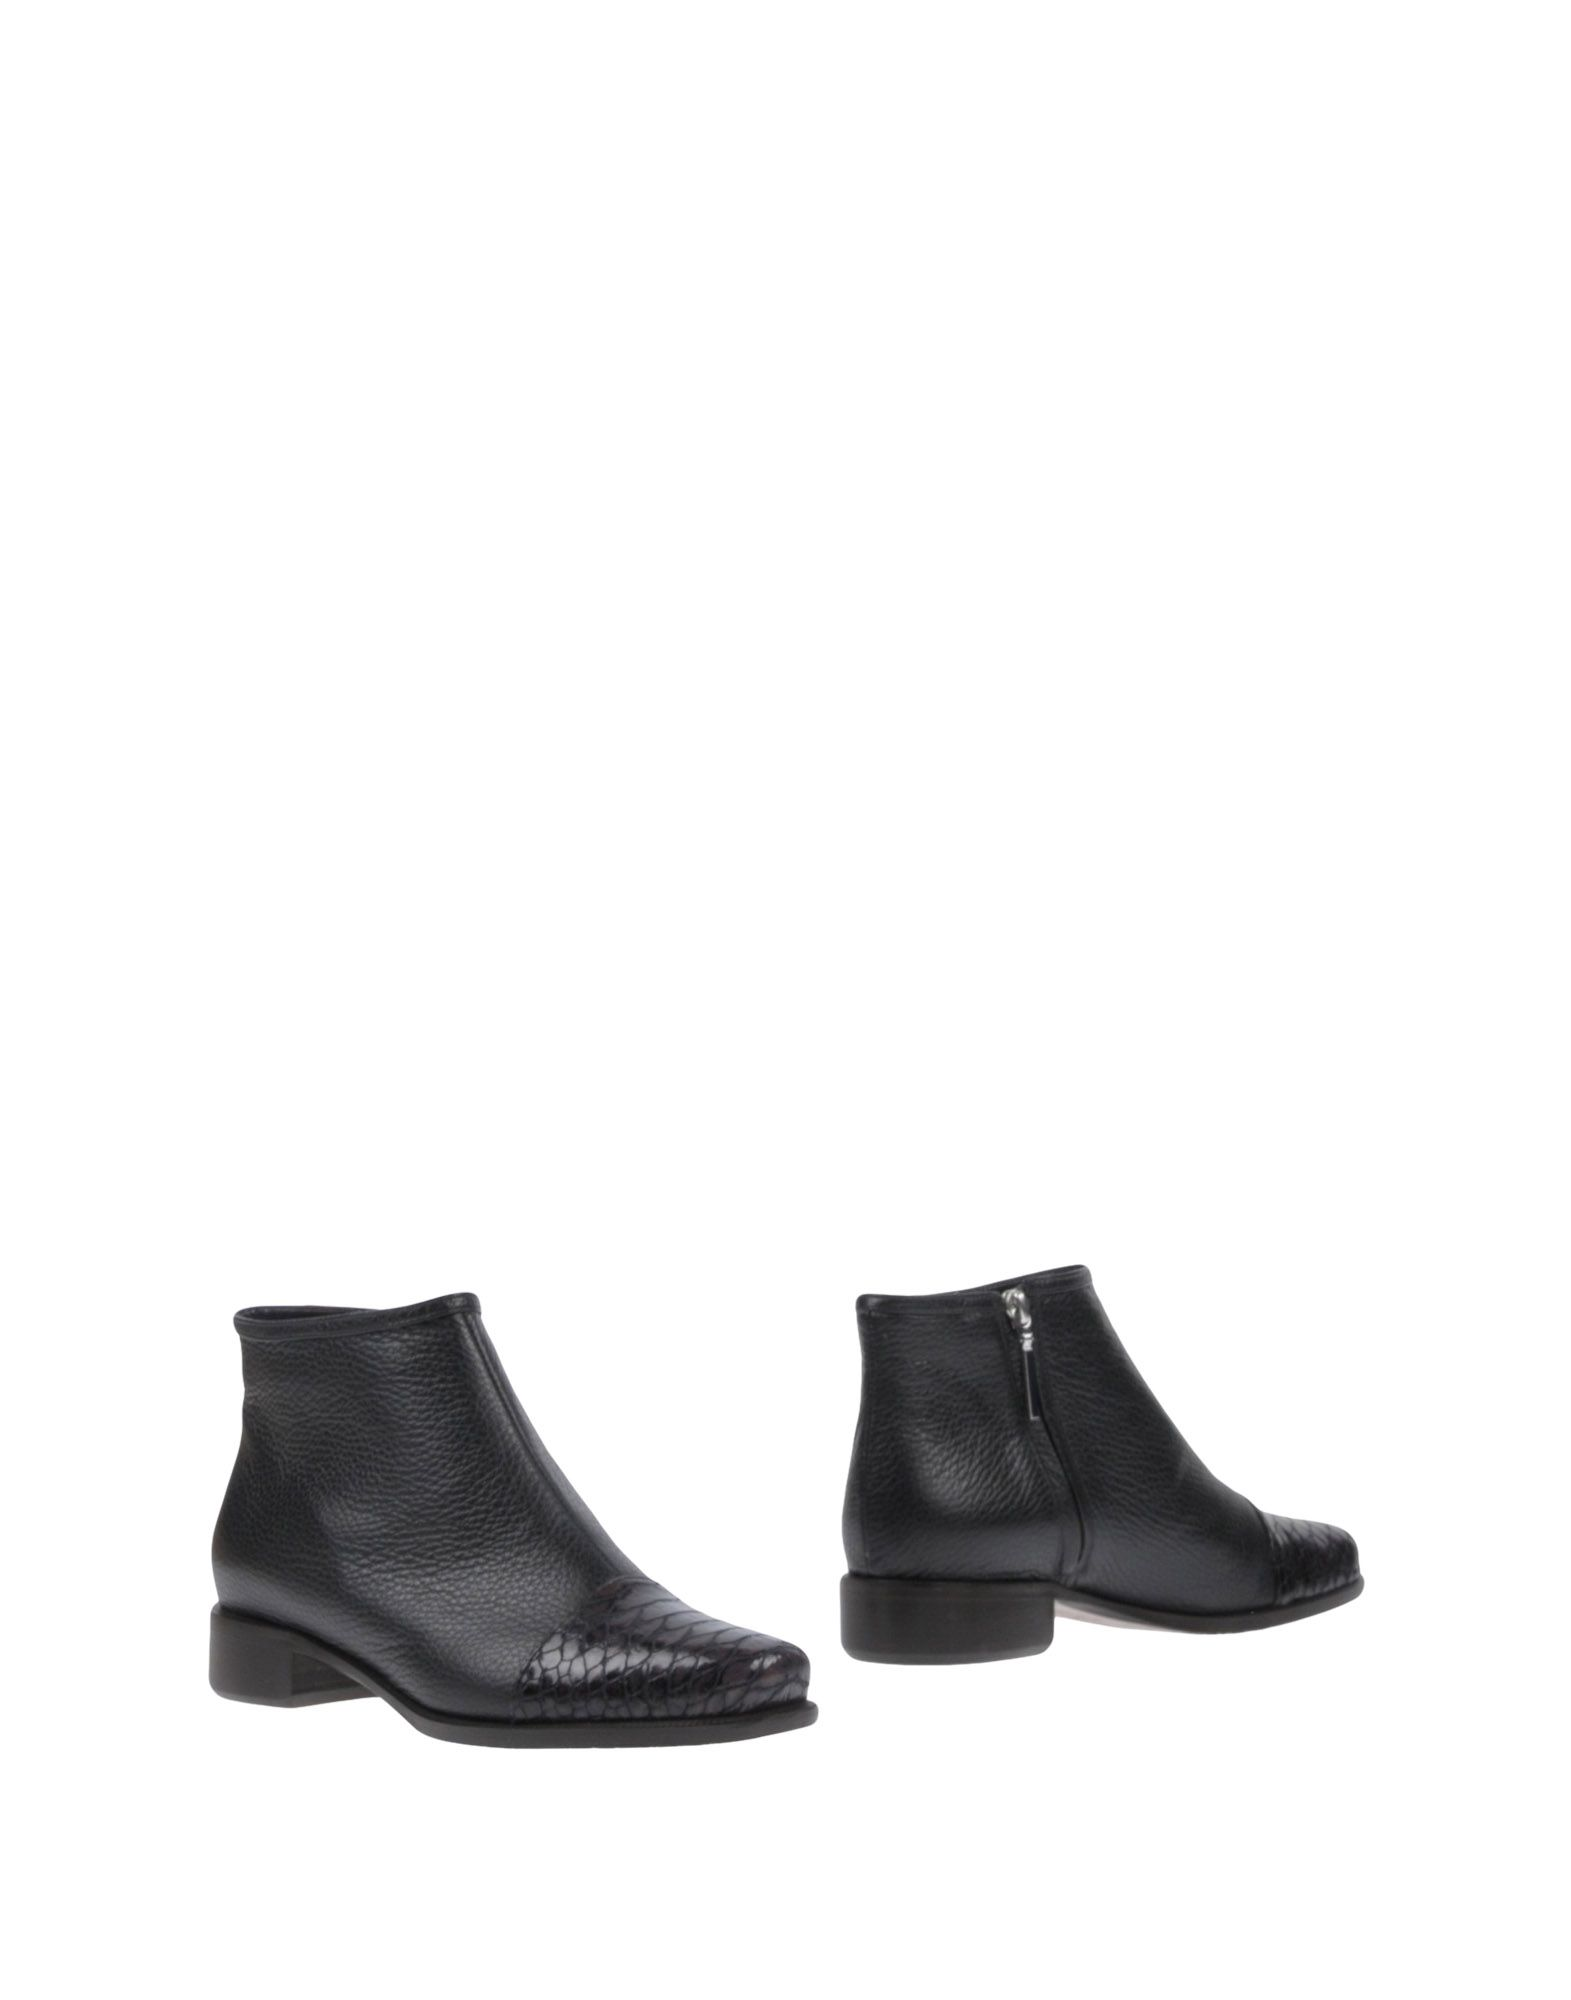 Dibrera By Paolo Paolo By Zanoli Ankle Boot - Women Dibrera By Paolo Zanoli Ankle Boots online on  Canada - 11447035FT a685fe